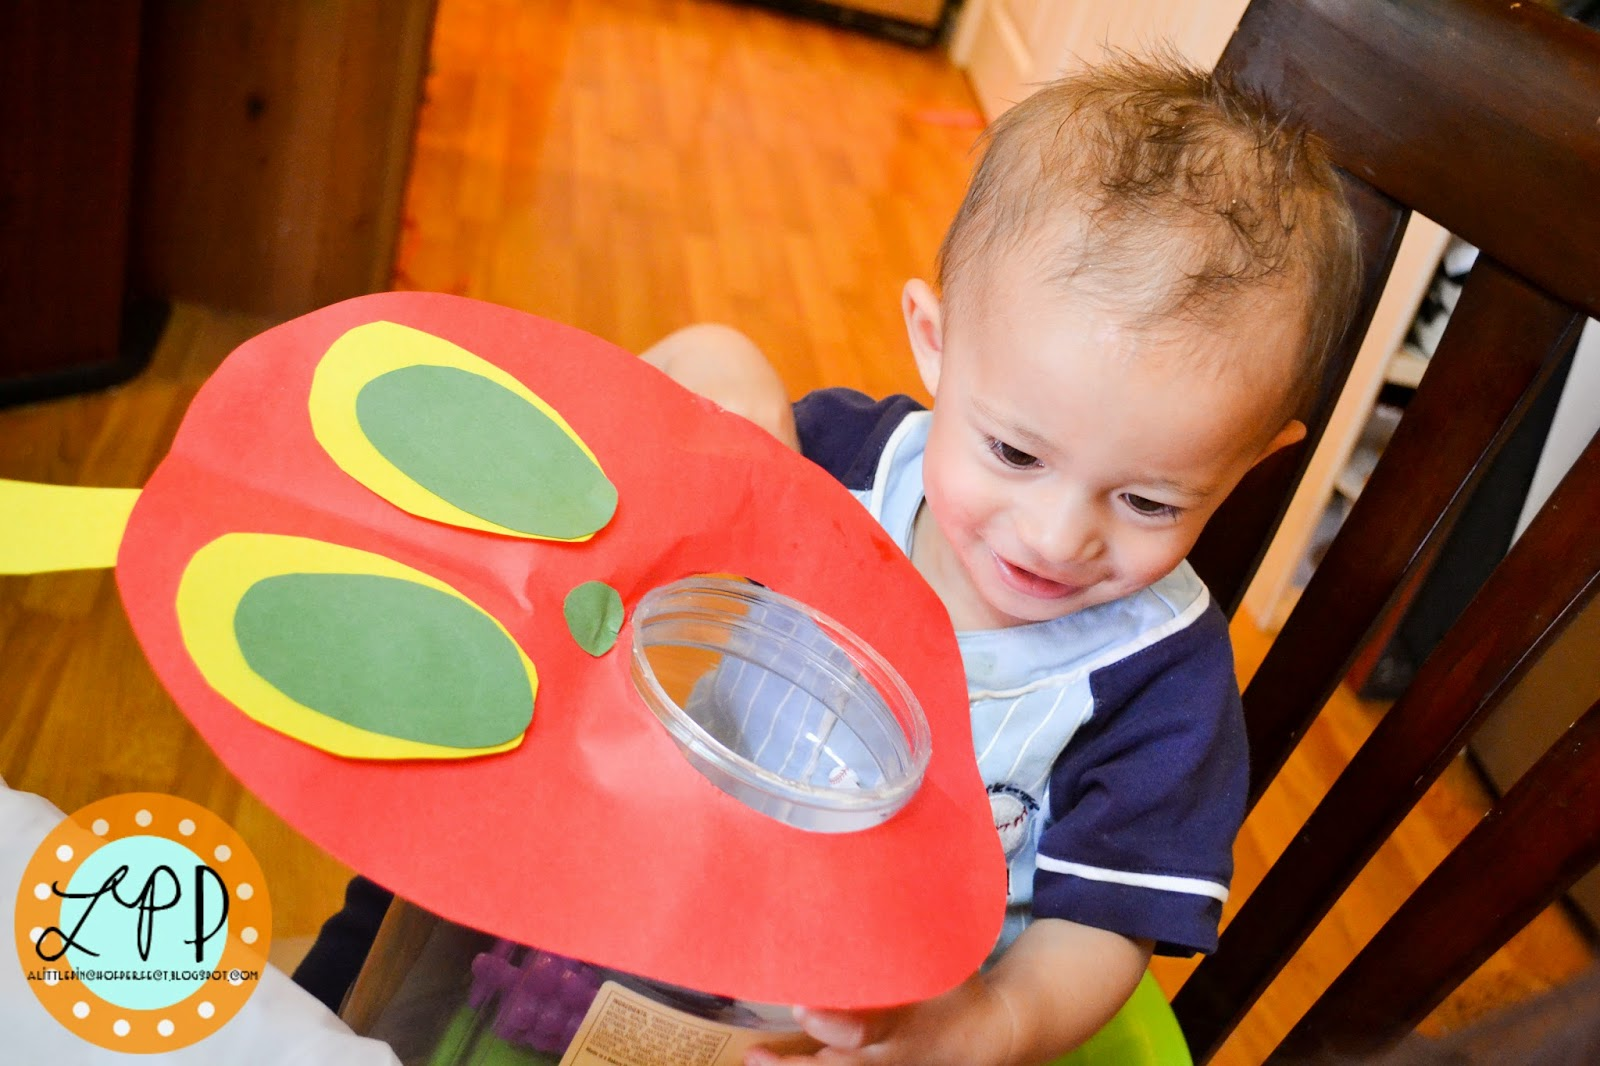 The Very Hungry Caterpillar Toddler Amp Preschool Games